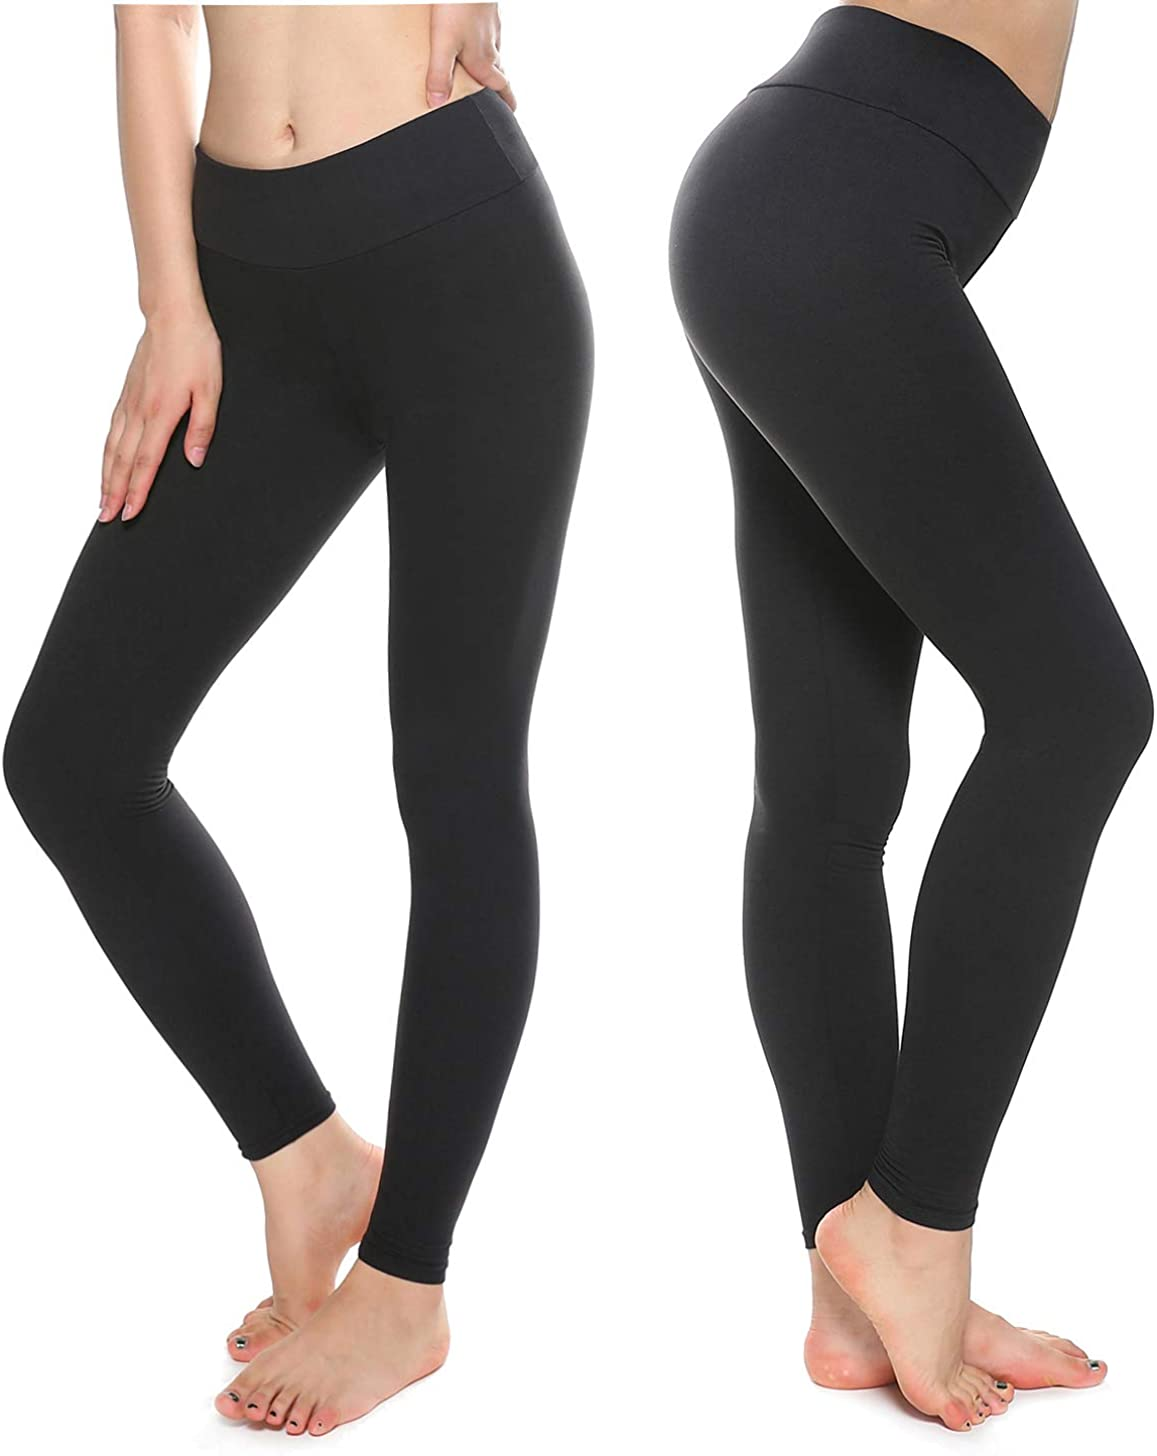 KT Buttery Soft Capri Leggings for Women - High Waisted Capri Pants with Pockets - Reg & Plus Size - 10+ Colors